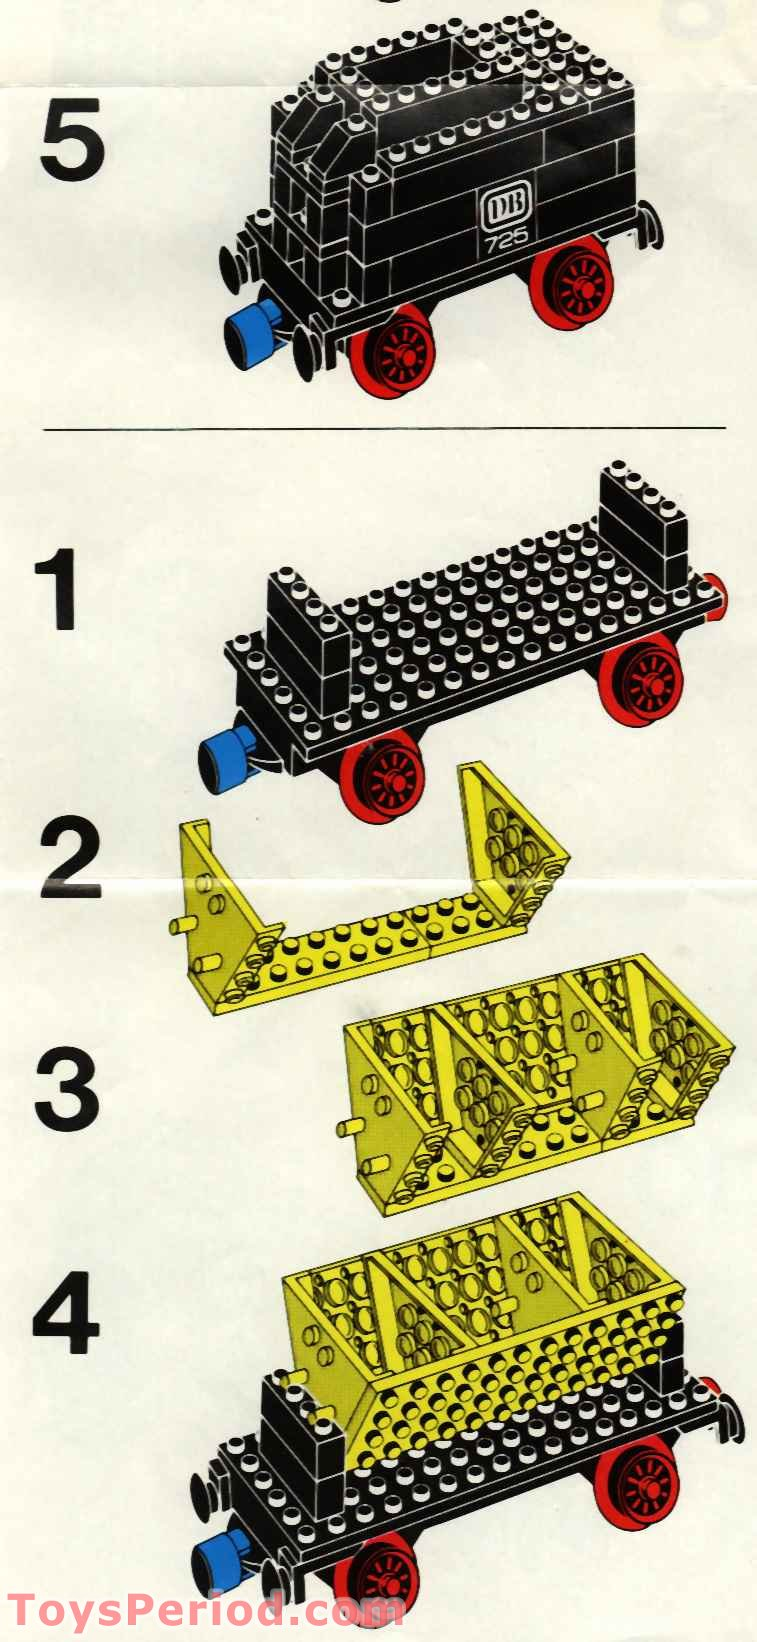 Red G Wagon >> LEGO 725-2 12v Freight Train and Track Set Parts Inventory